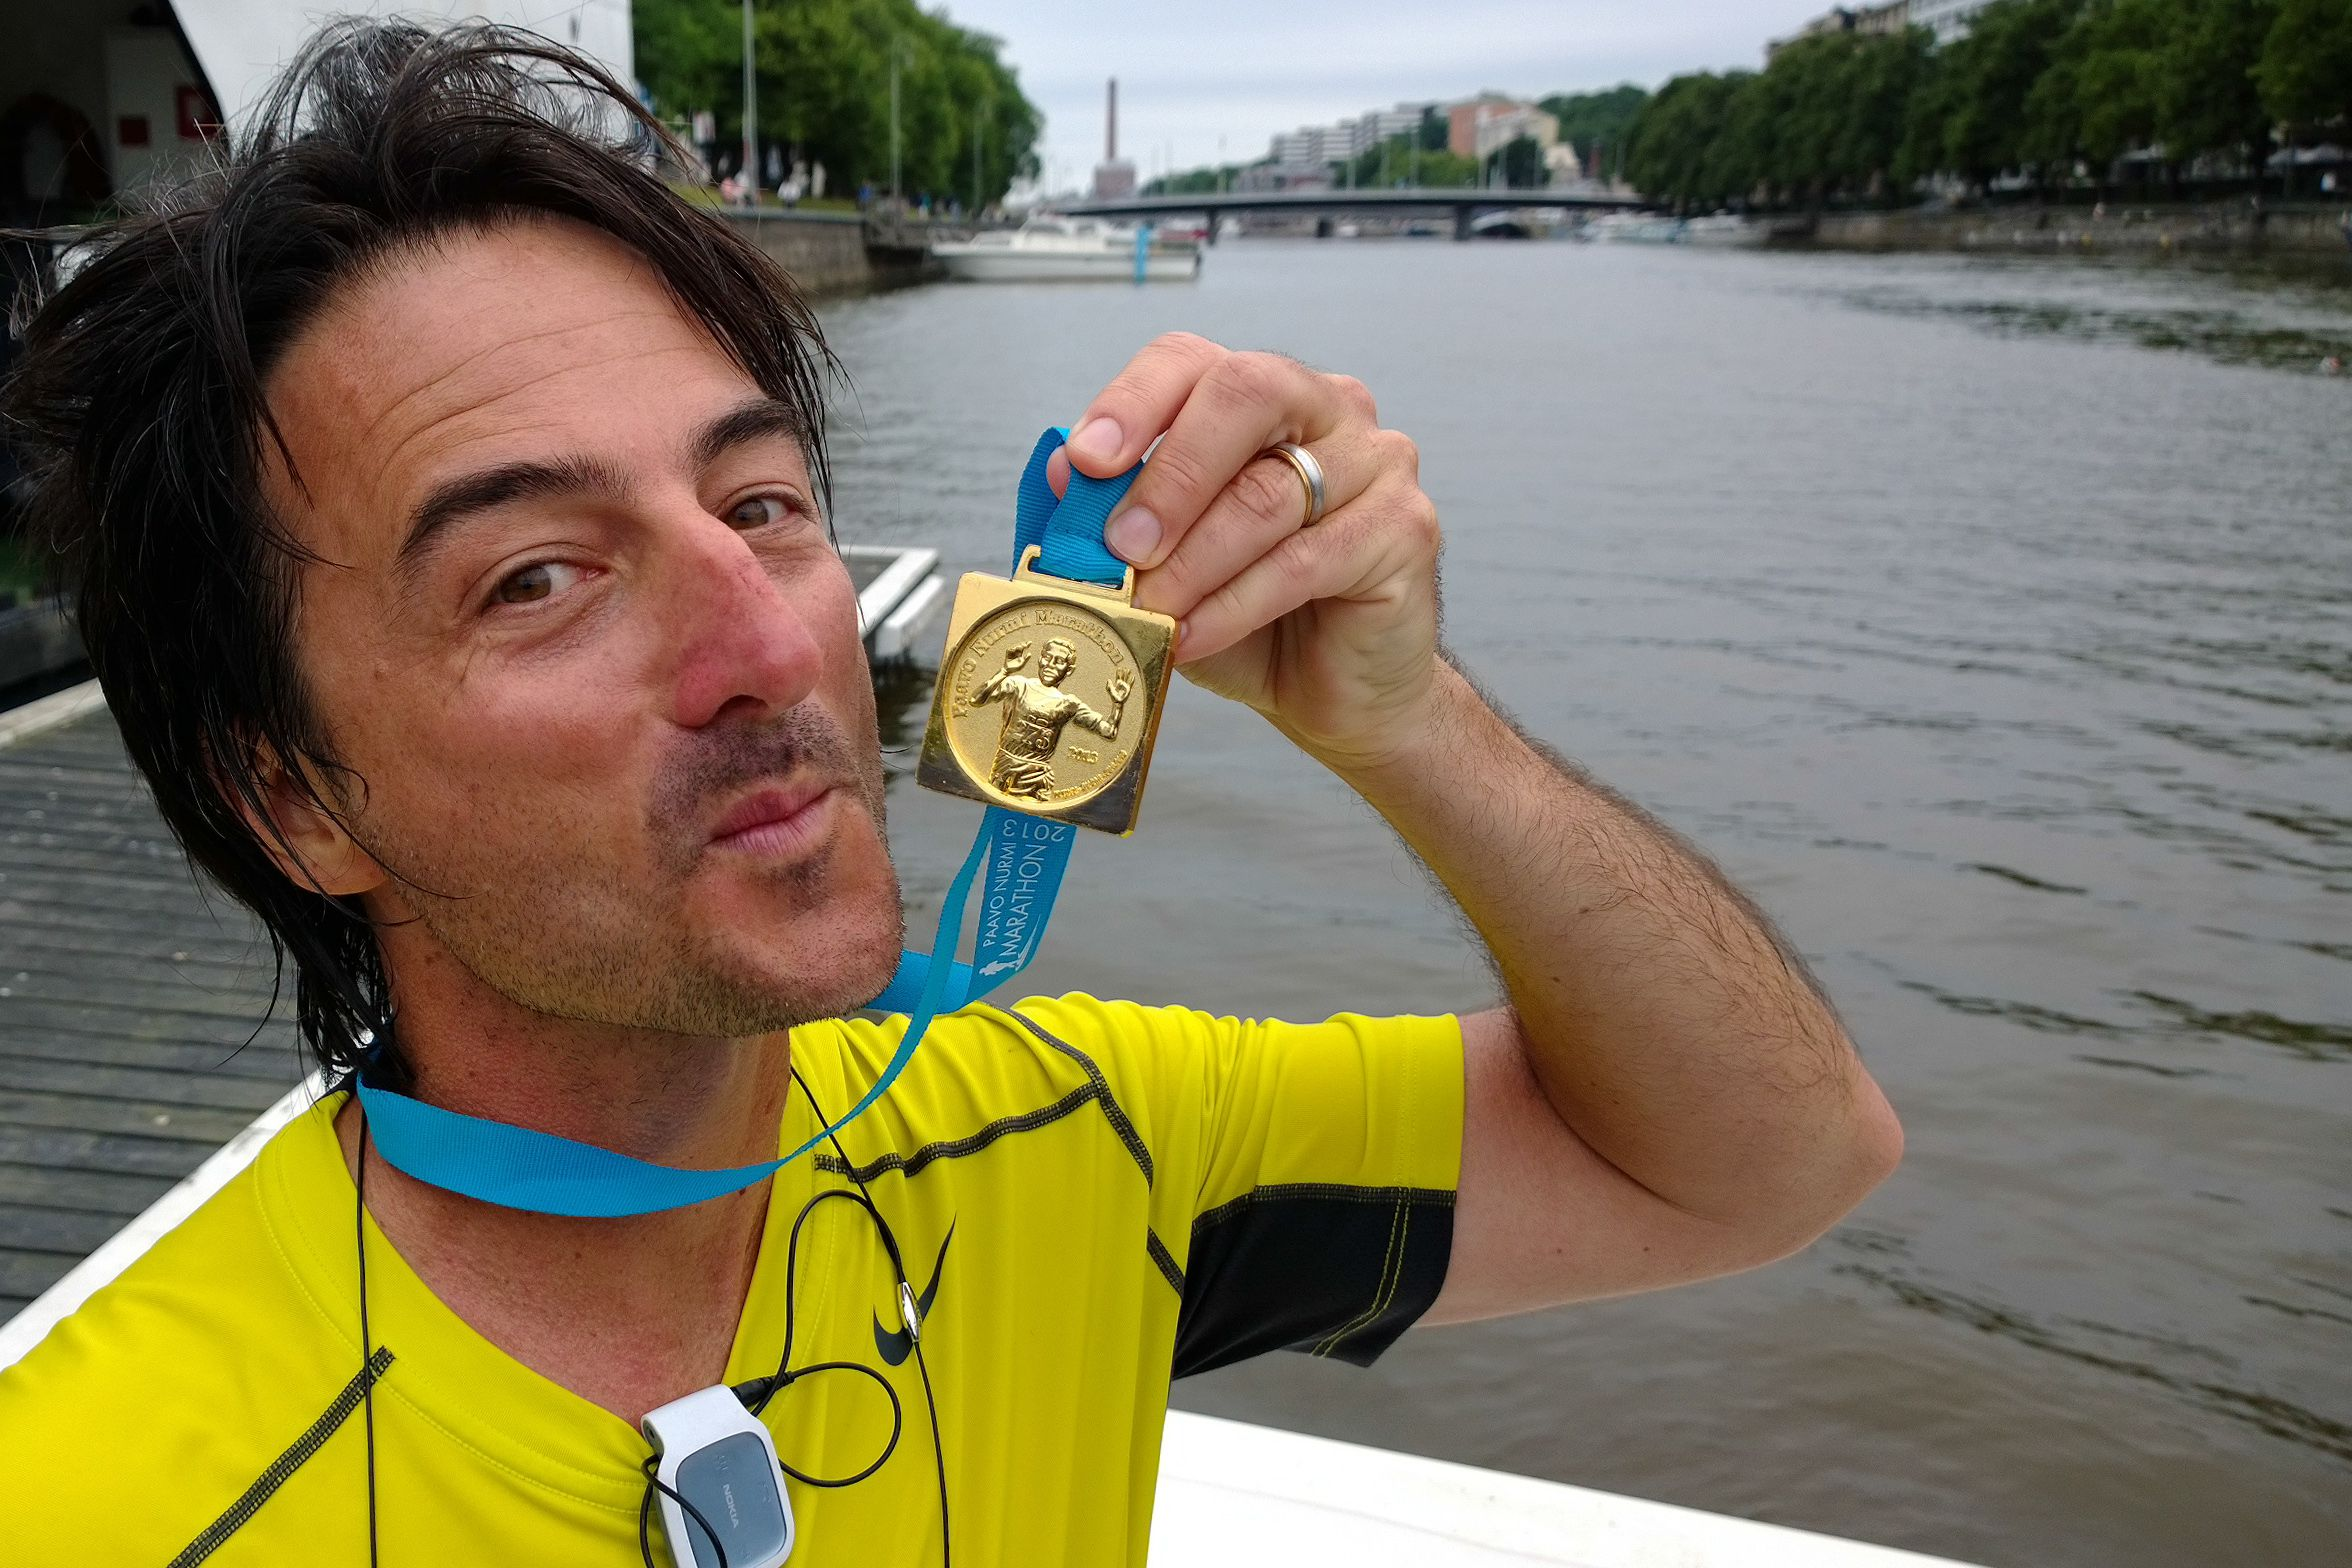 DONE! 3rd Marathon in 3 Countries in 6 months! WOO HOO!